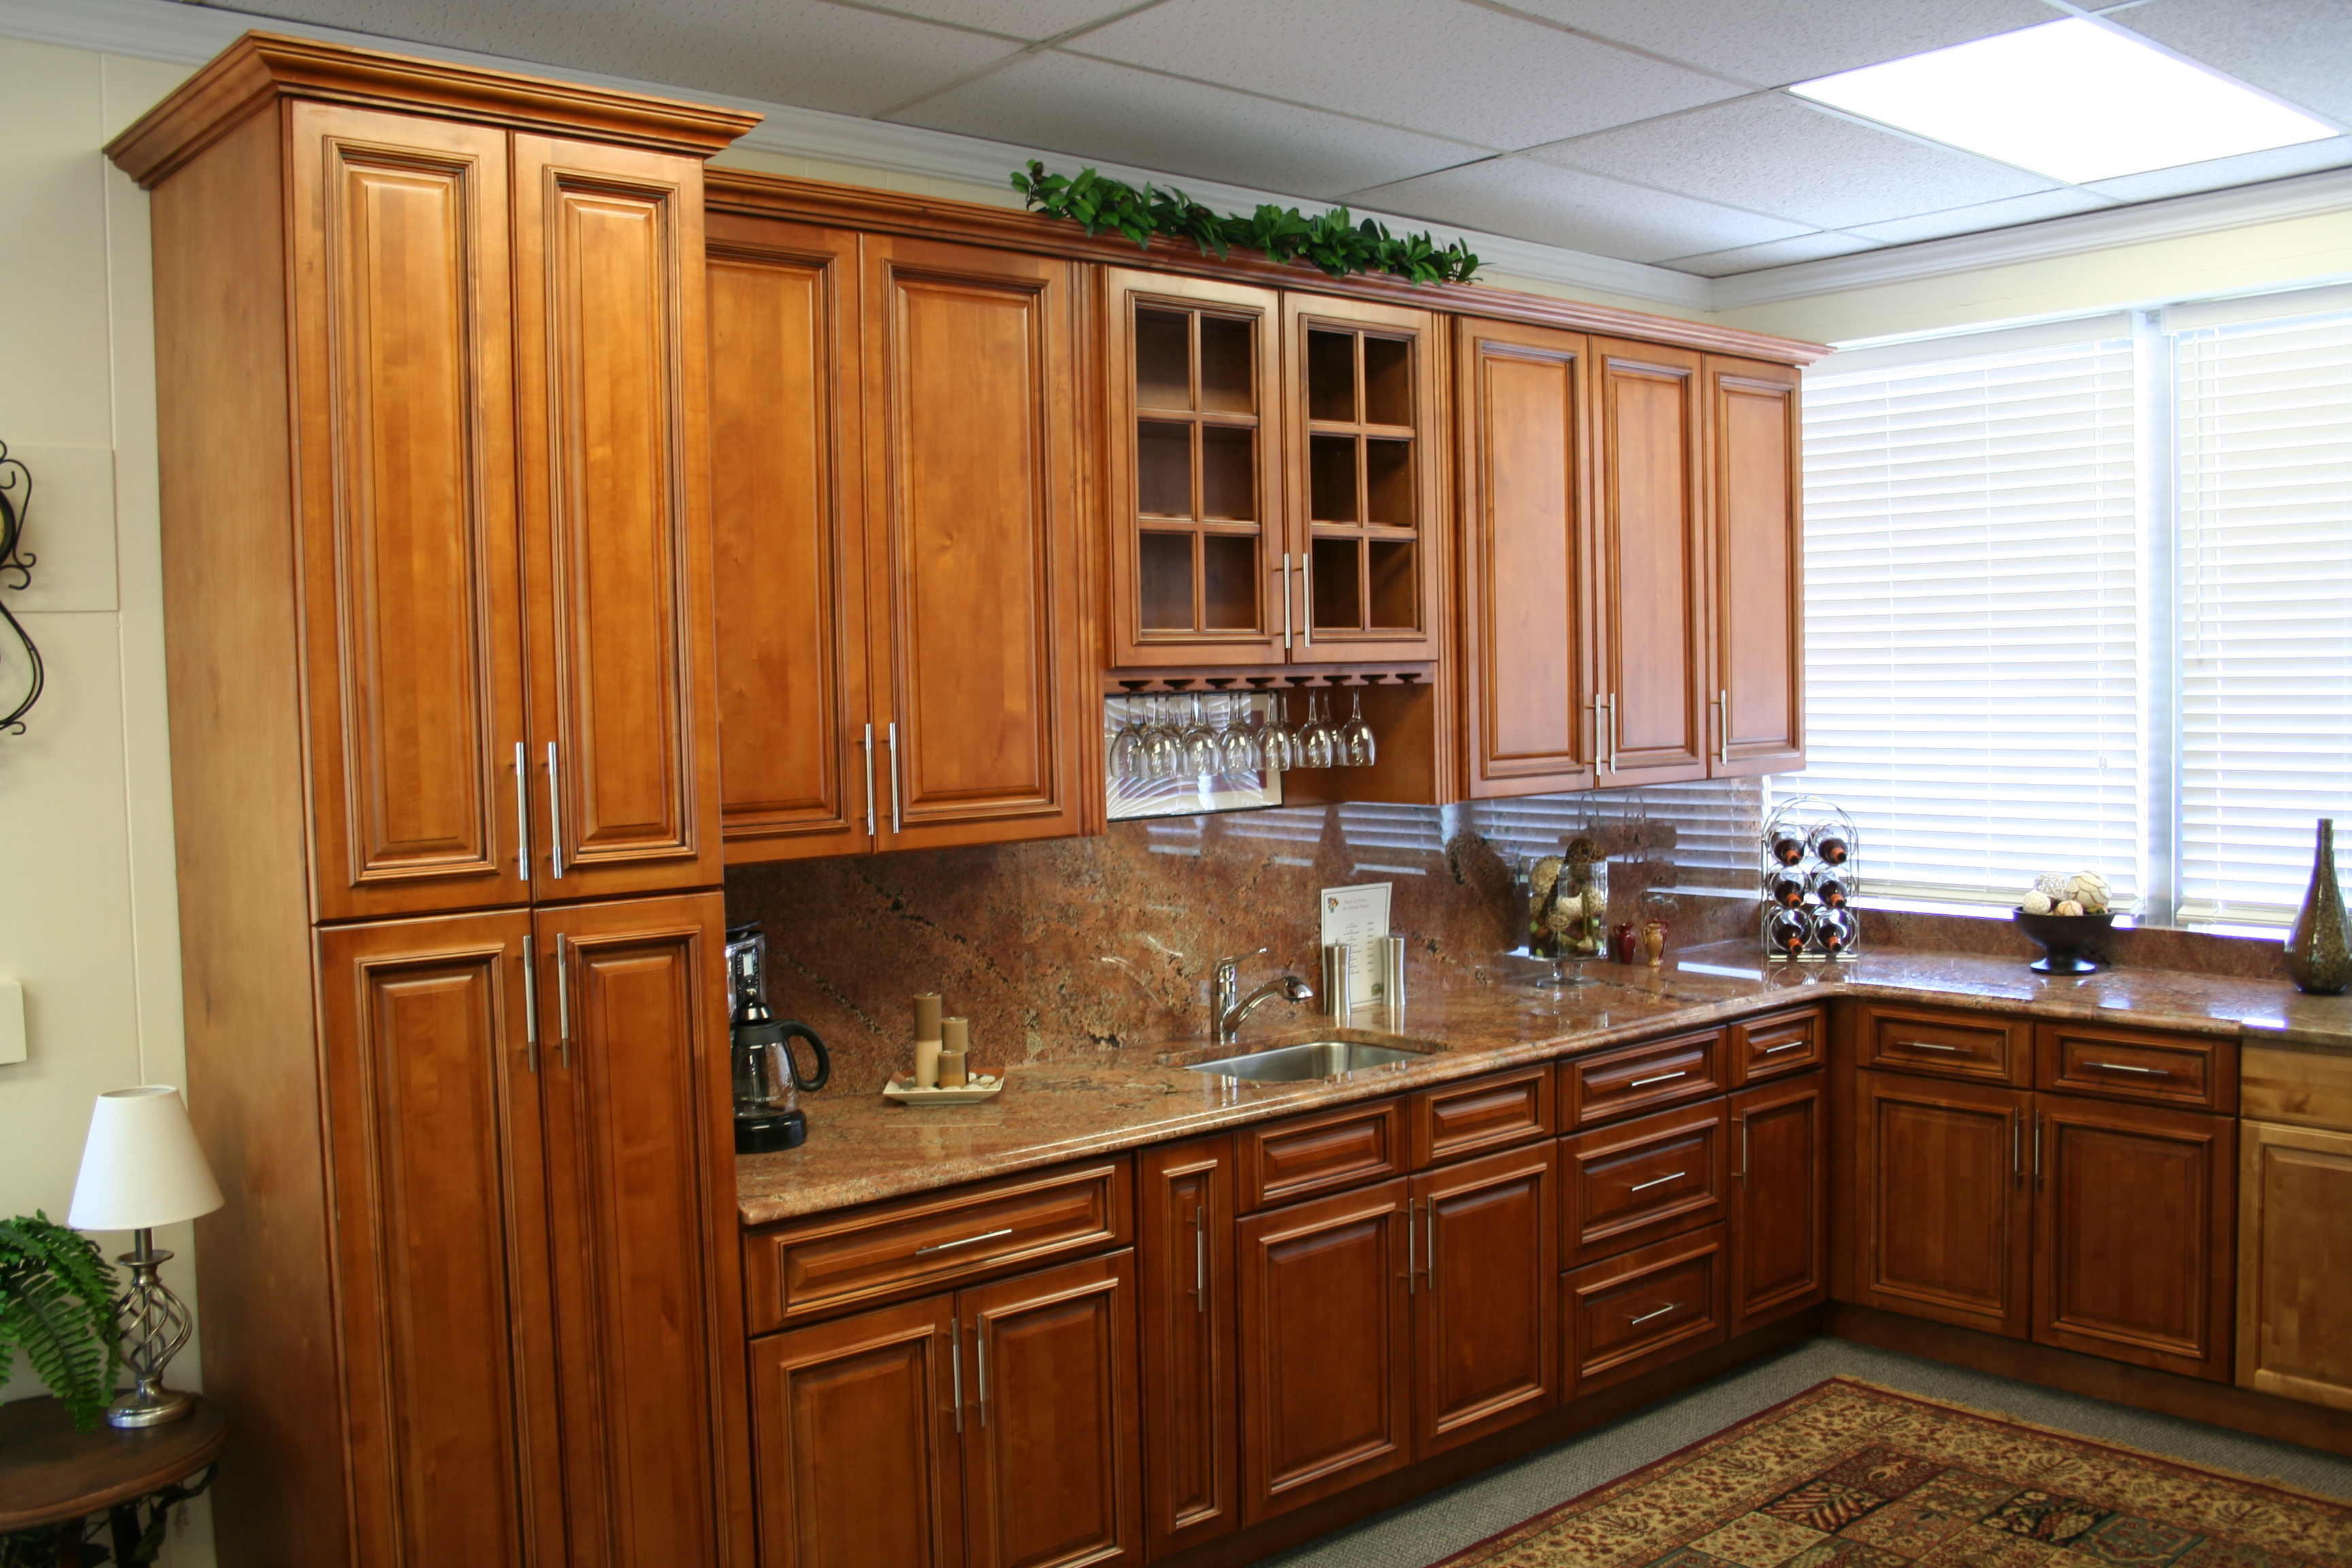 Glazed Maple Cabinets | Cabinets and Granite on Black Granite Countertops With Maple Cabinets  id=66664